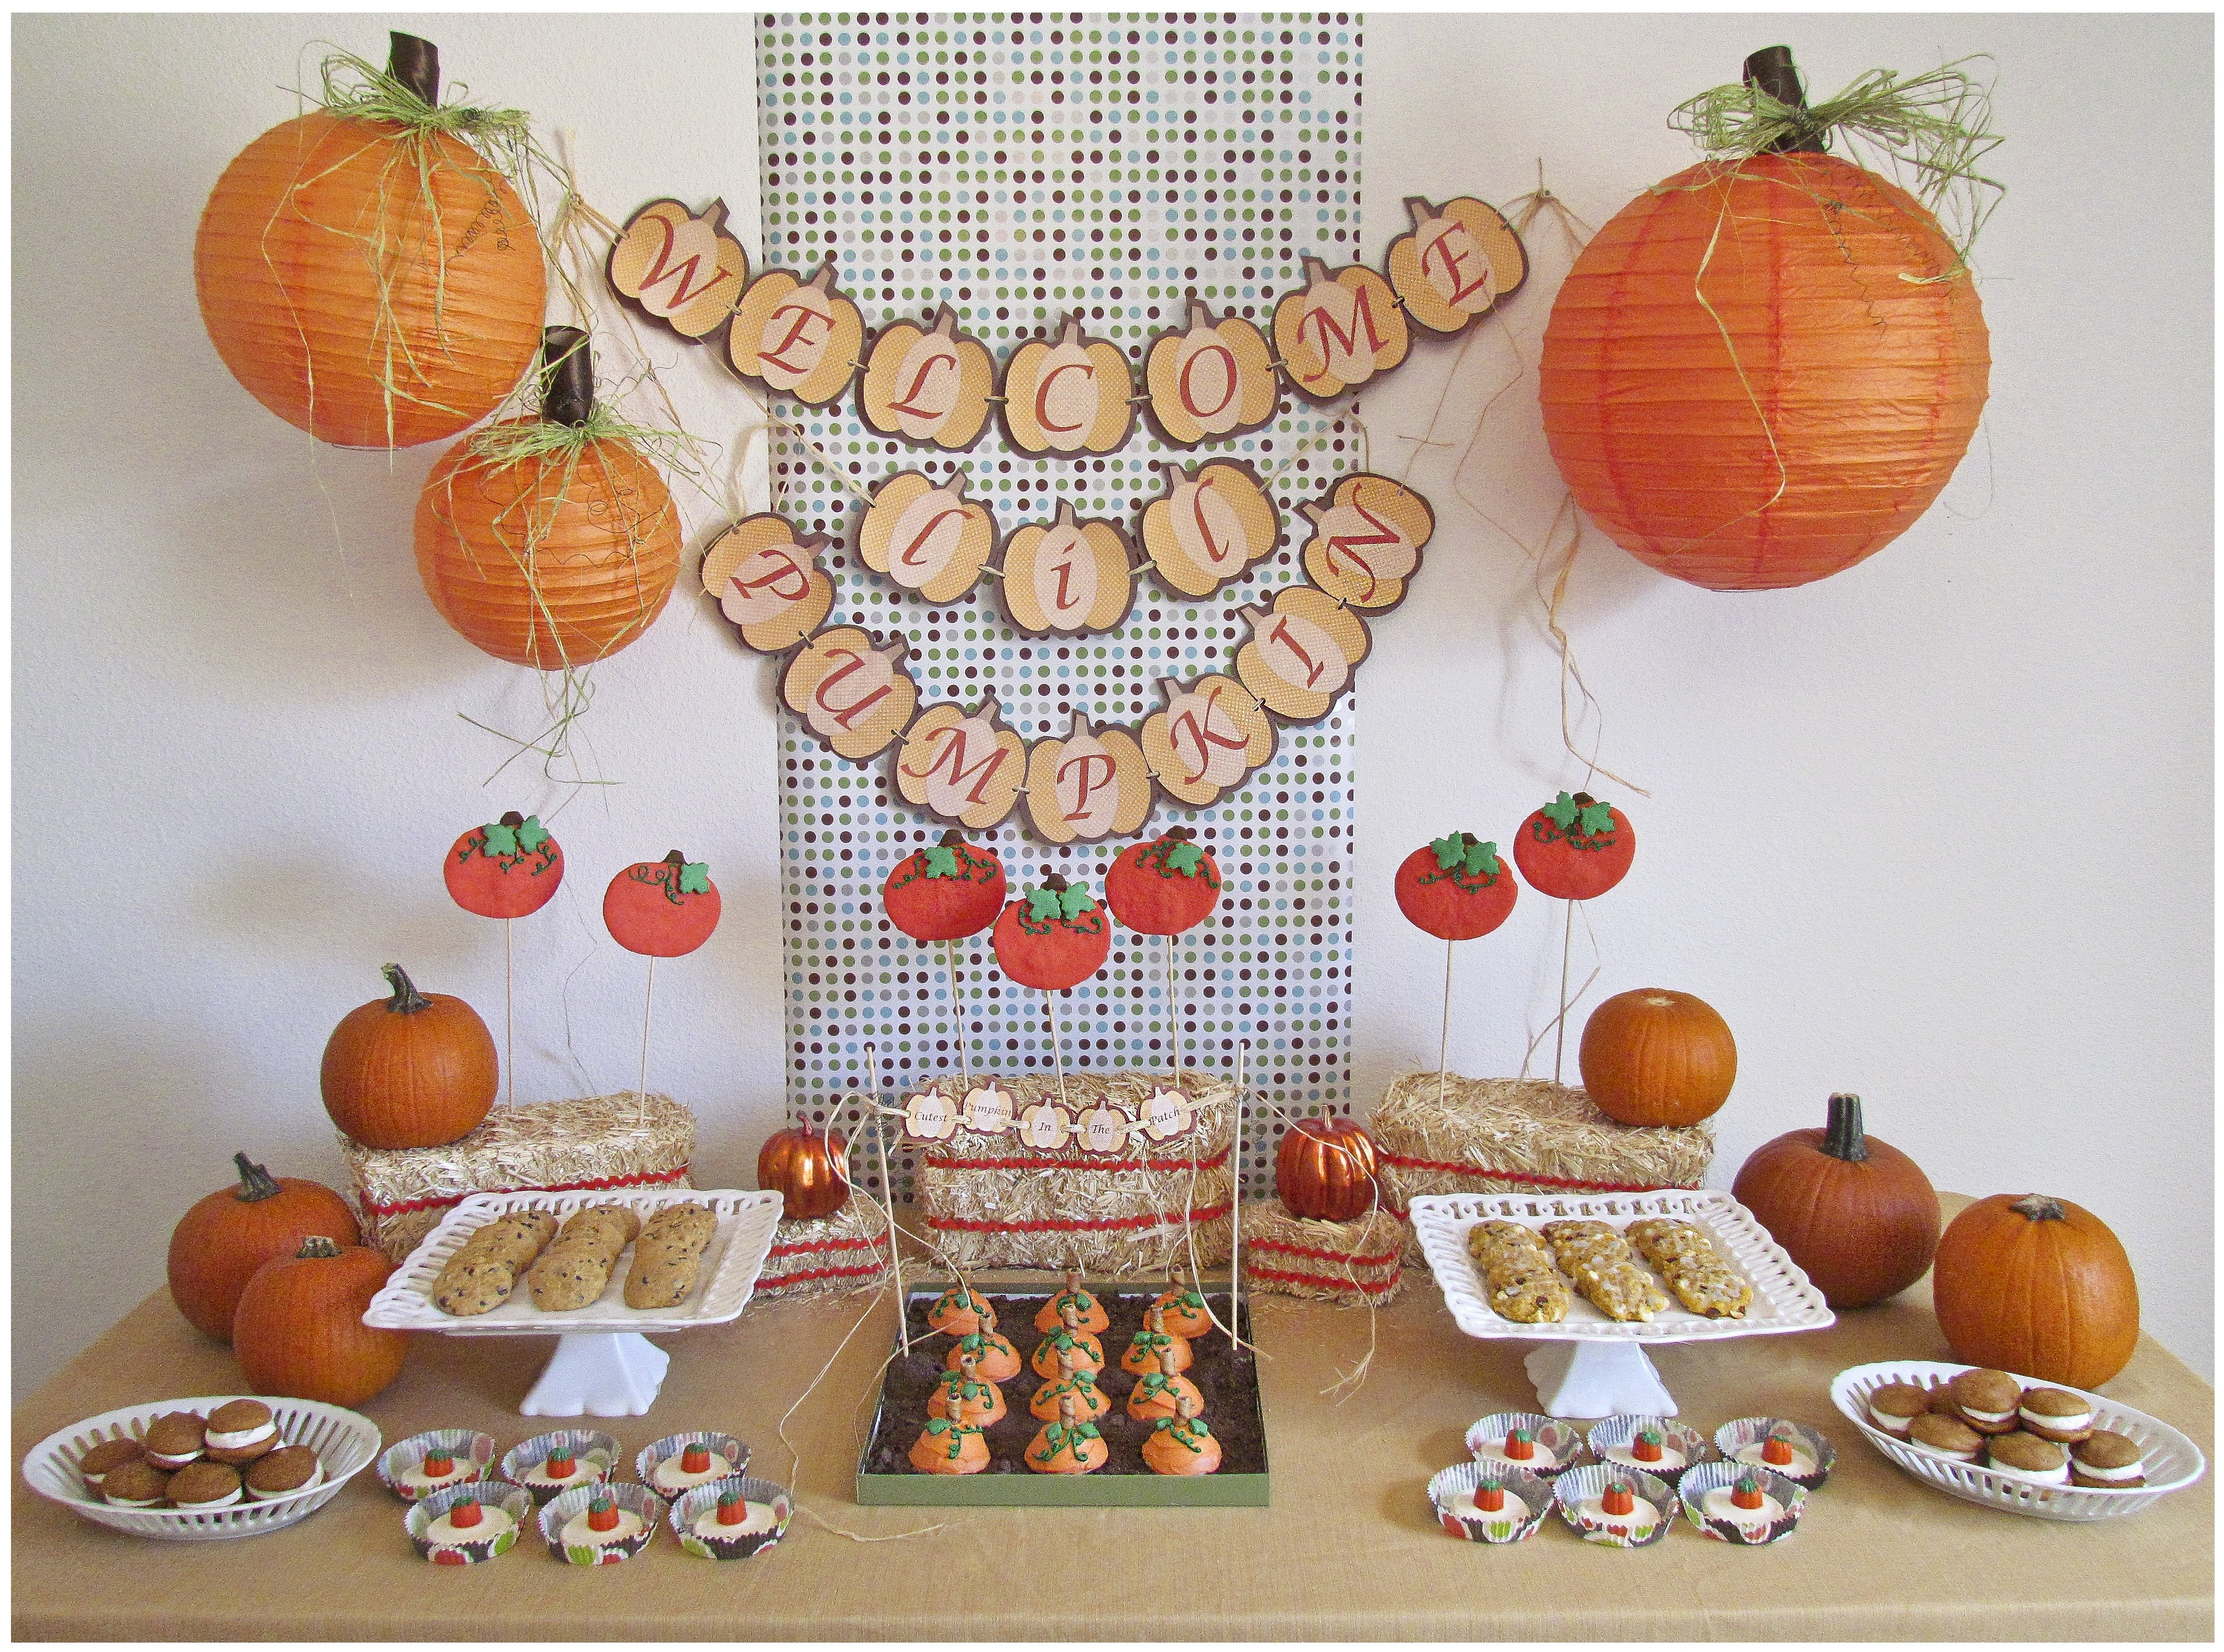 10 Gorgeous Fall Themed Baby Shower Ideas fall baby shower decorating ideas omega center ideas for baby 2020